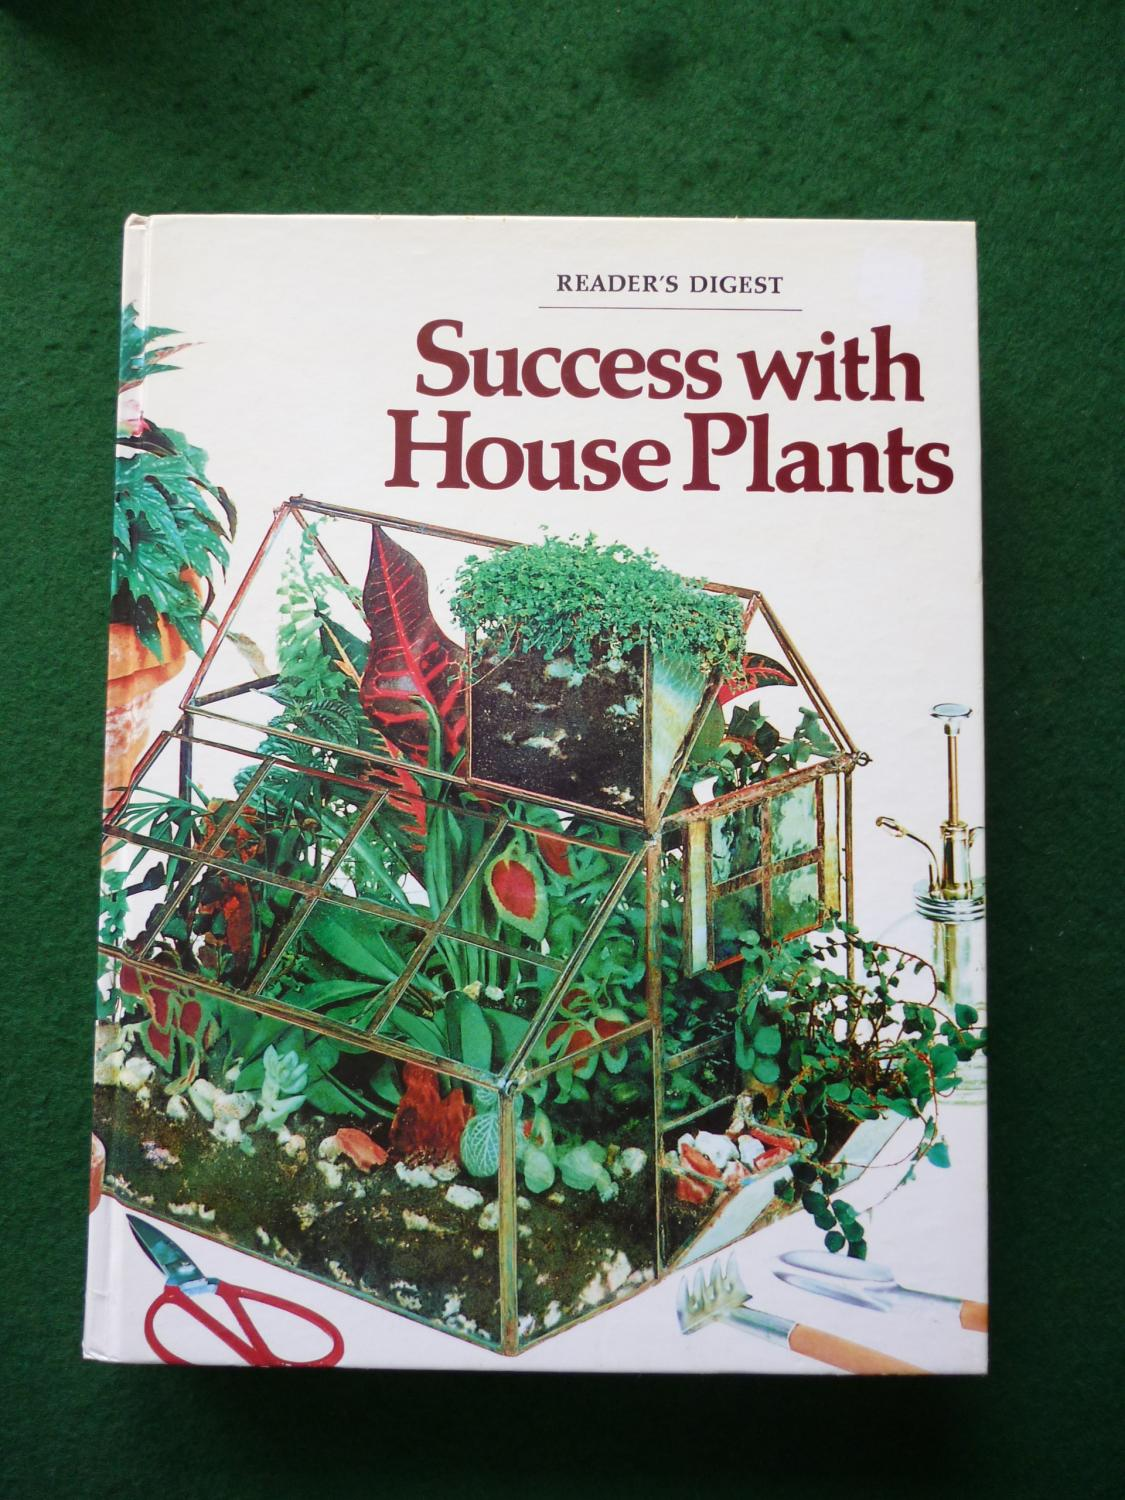 Awe Inspiring Readers Digest Success With House Plants Interior Design Ideas Clesiryabchikinfo